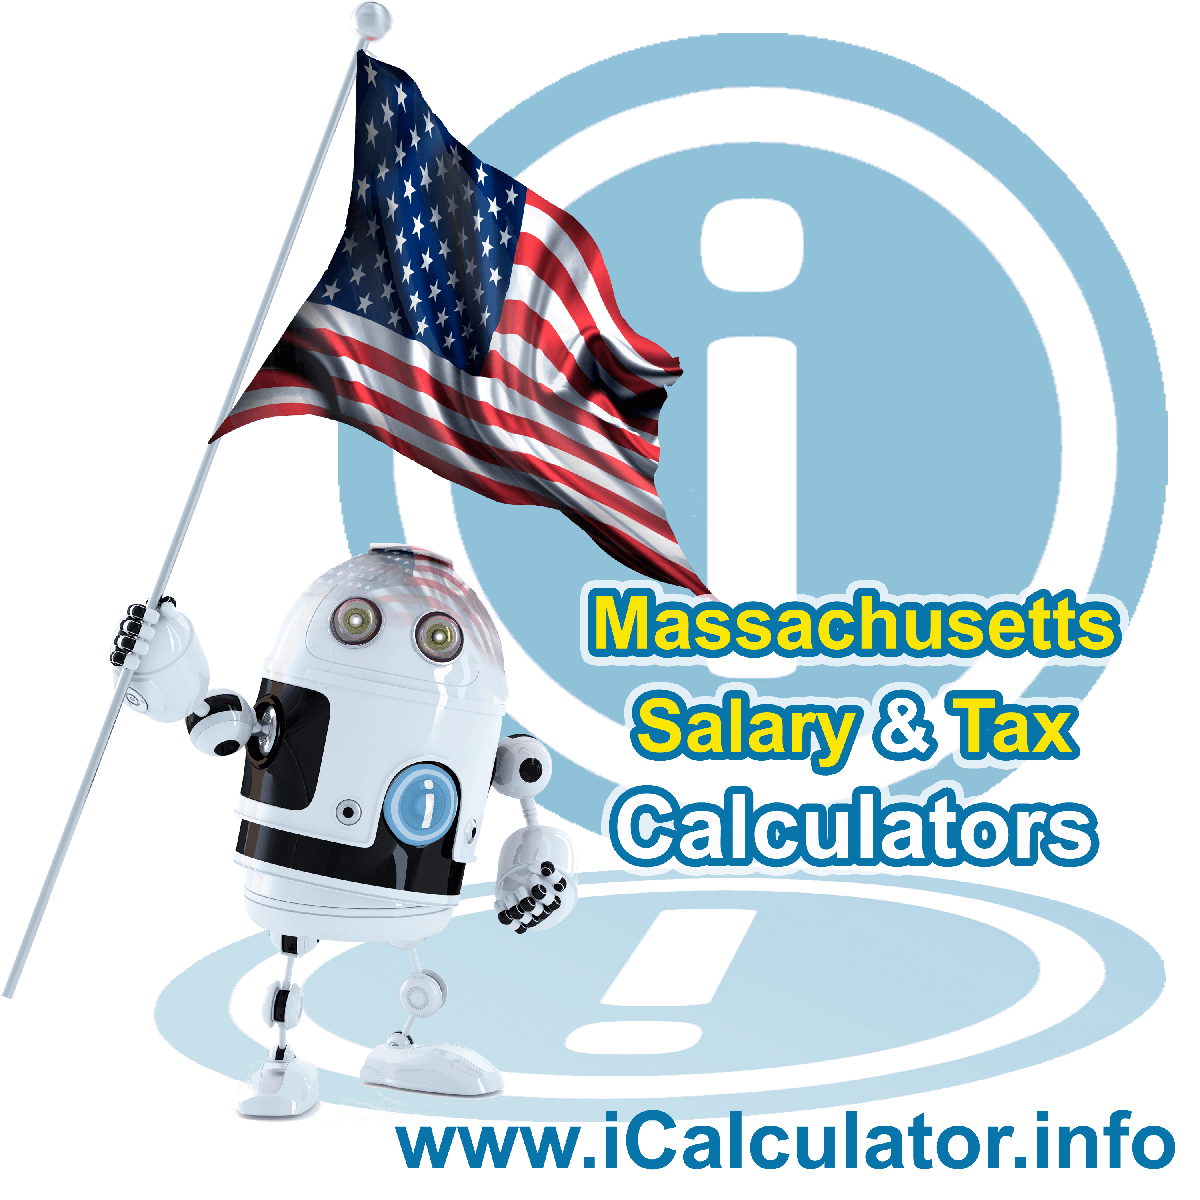 Massachusetts Salary Calculator 2020 | iCalculator | The Massachusetts Salary Calculator allows you to quickly calculate your salary after tax including Massachusetts State Tax, Federal State Tax, Medicare Deductions, Social Security, Capital Gains and other income tax and salary deductions complete with supporting Massachusetts state tax tables